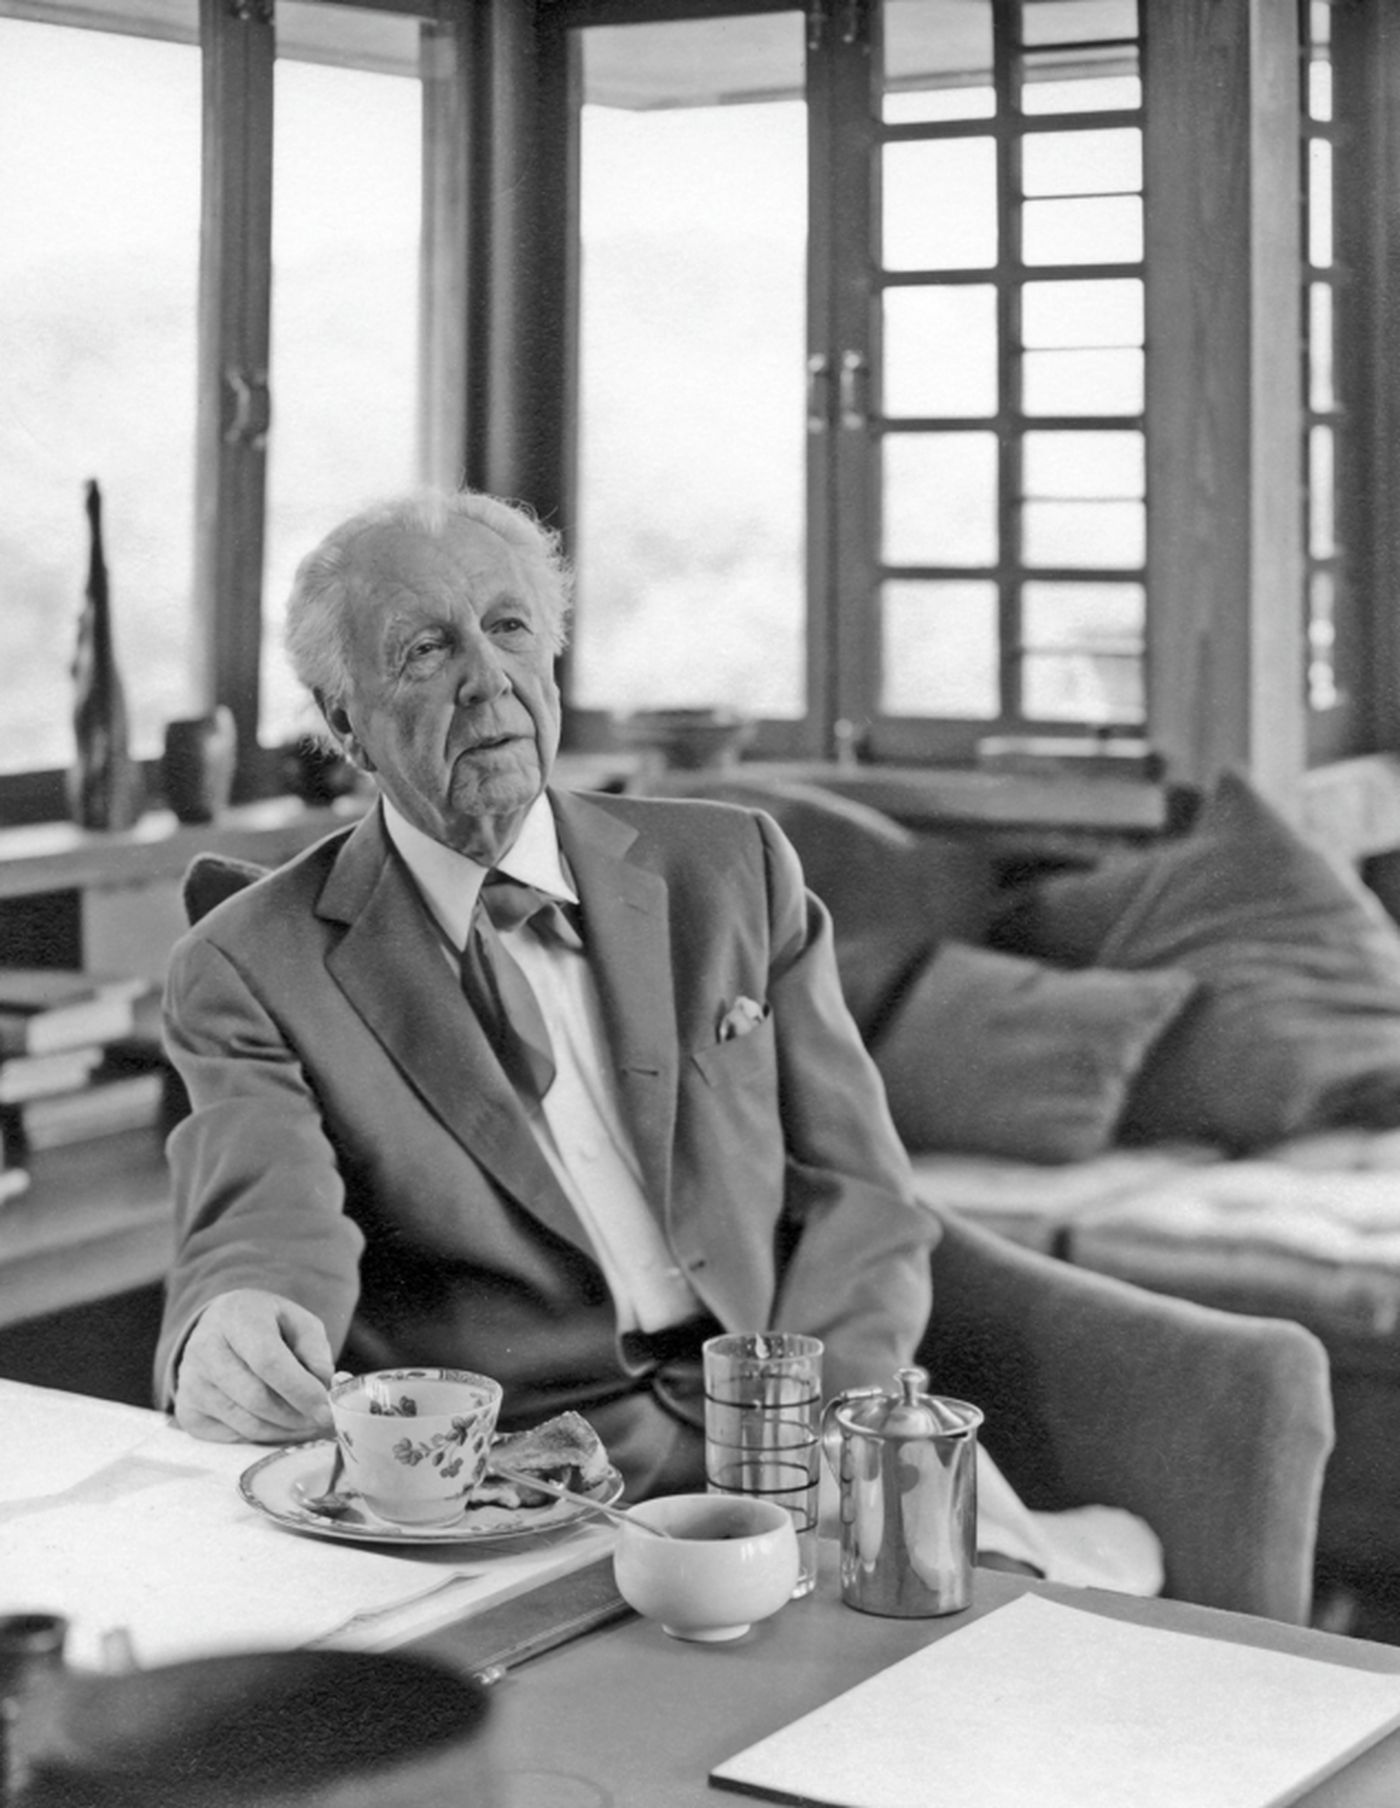 Cook Massacres Seven At Wisconsin Home Frank Lloyd Wright